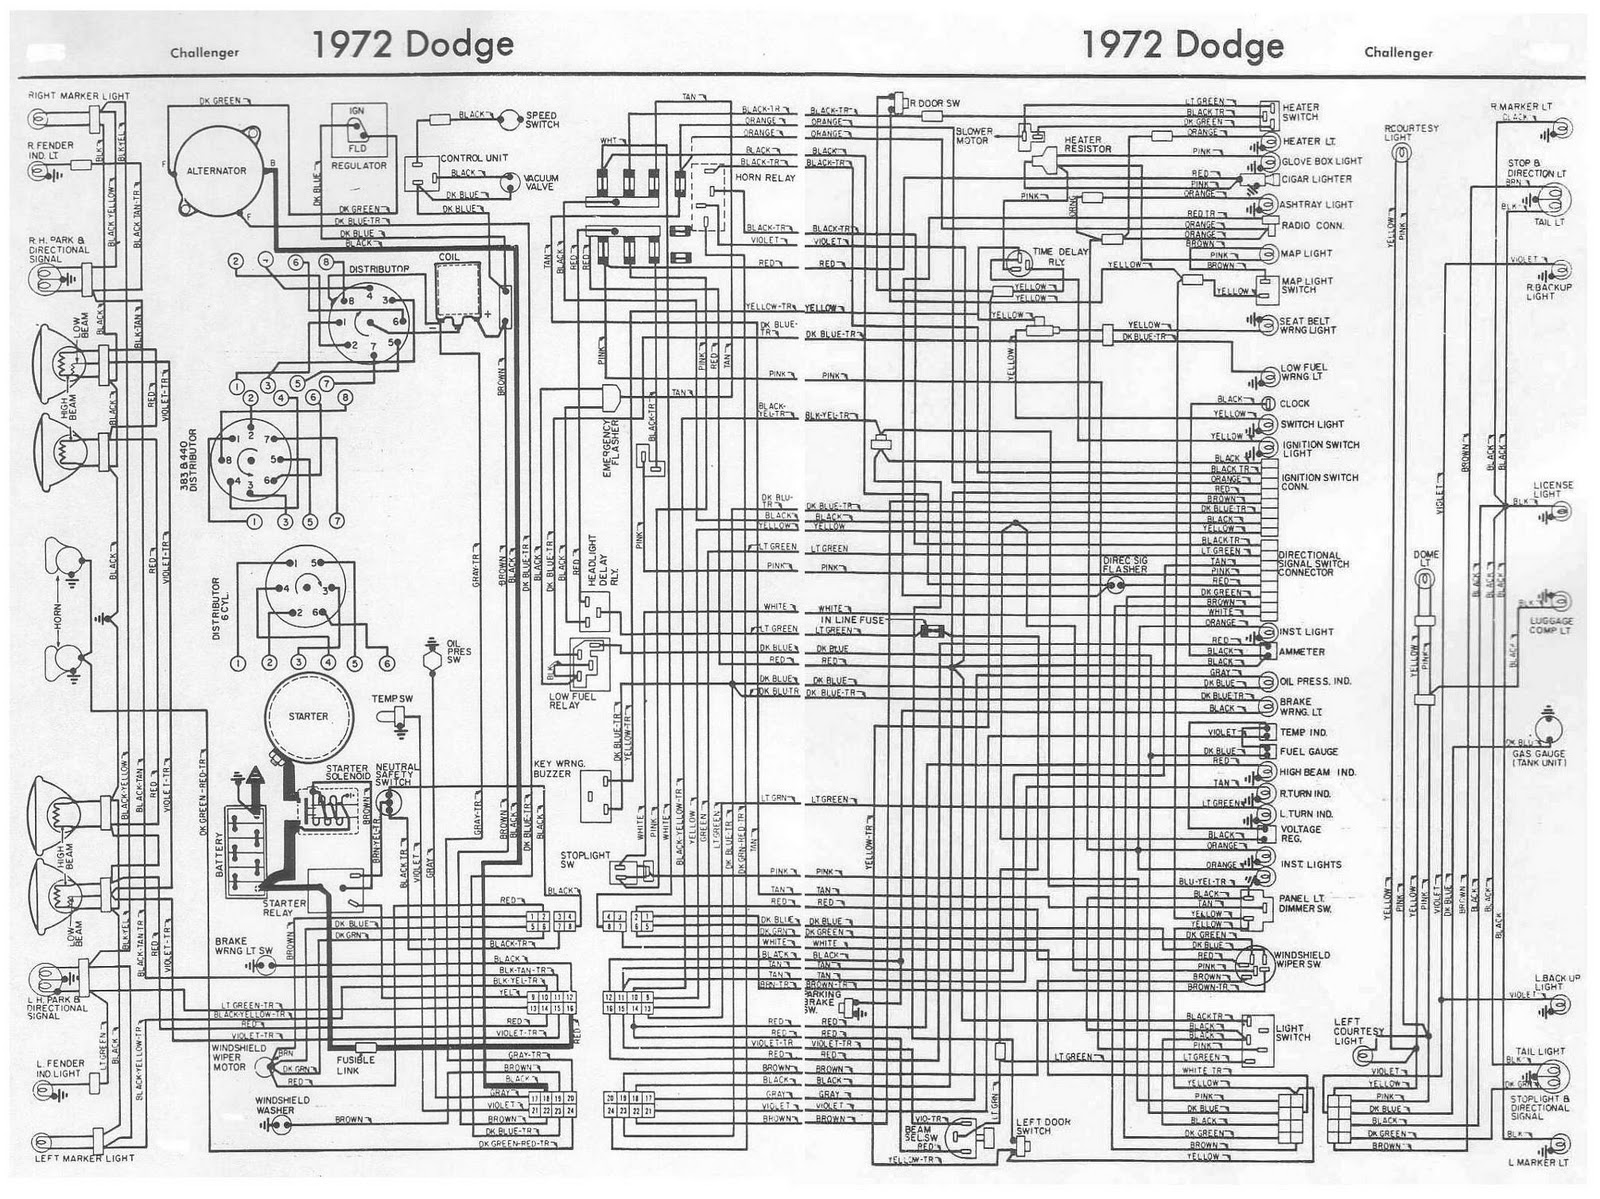 Dodge+Challenger+1972+Complete+Wiring+Diagram challenger wiring diagram bush hog wiring diagram \u2022 wiring diagram 3-Way Switch Wiring Diagram for Switch To at soozxer.org